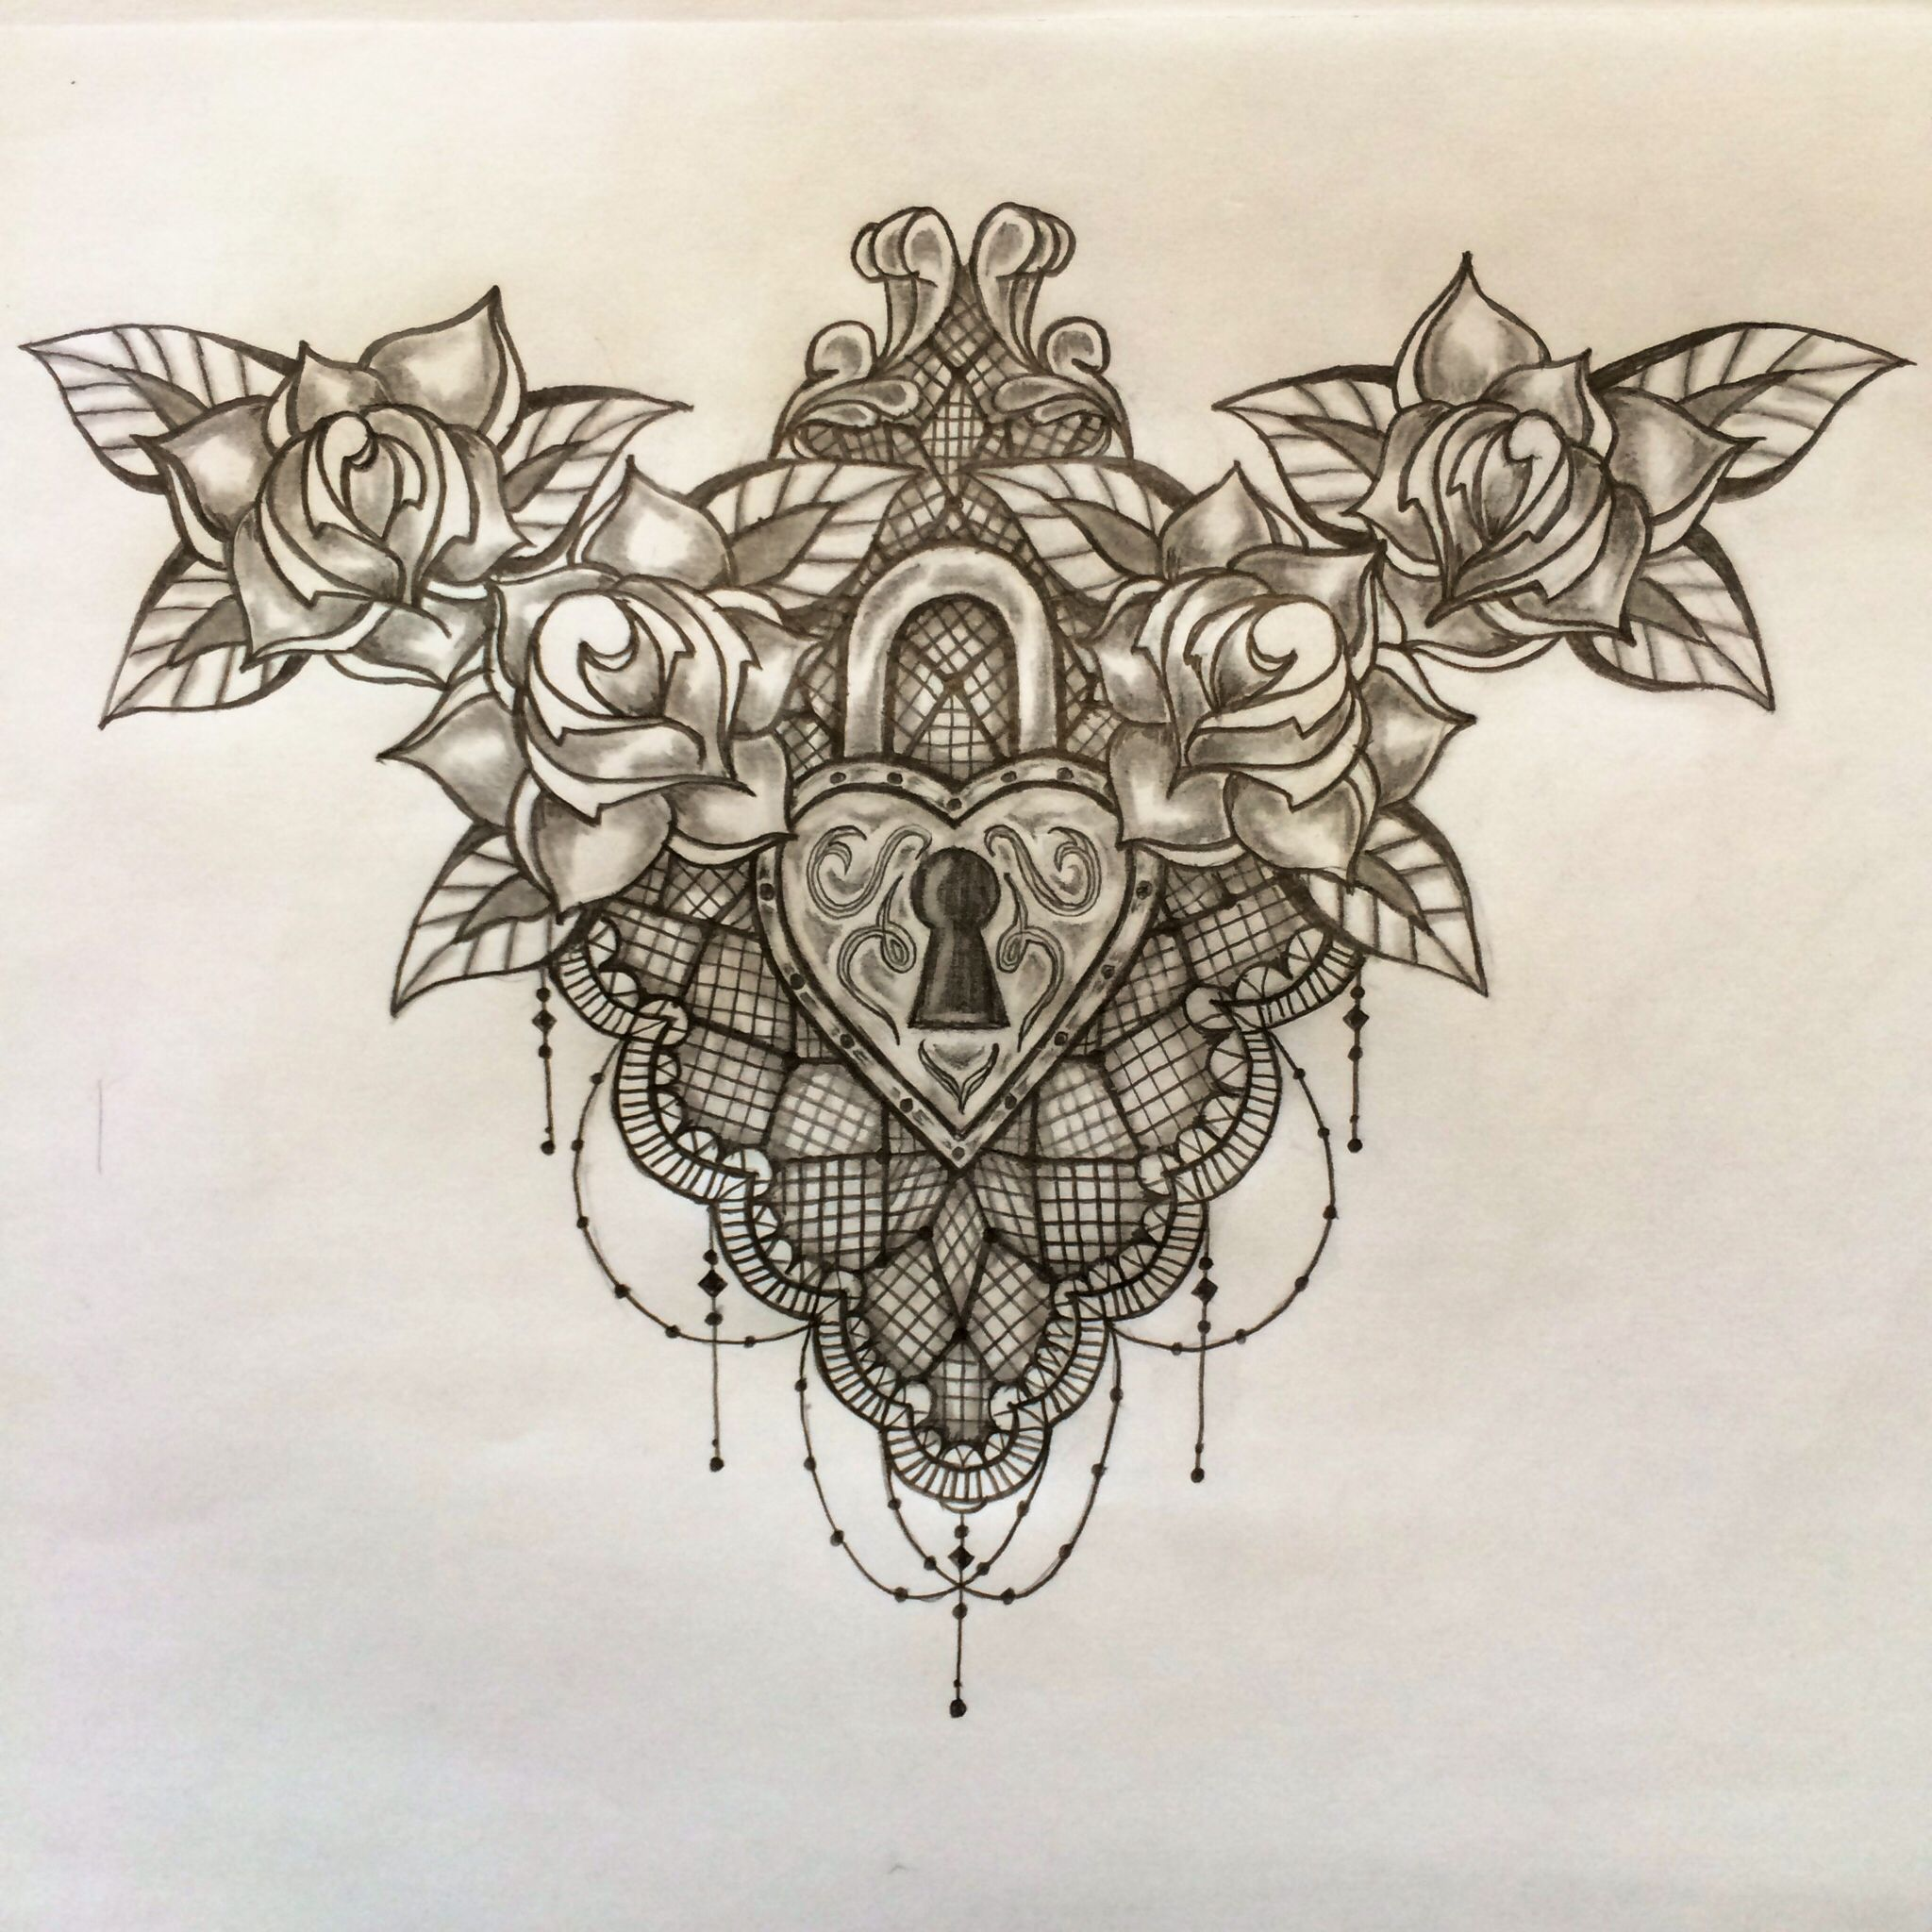 Lock And Lace Chest Tattoo Sketch By Ranz Chest Tattoos For Women Chest Tattoo Sketches Lace Tattoo